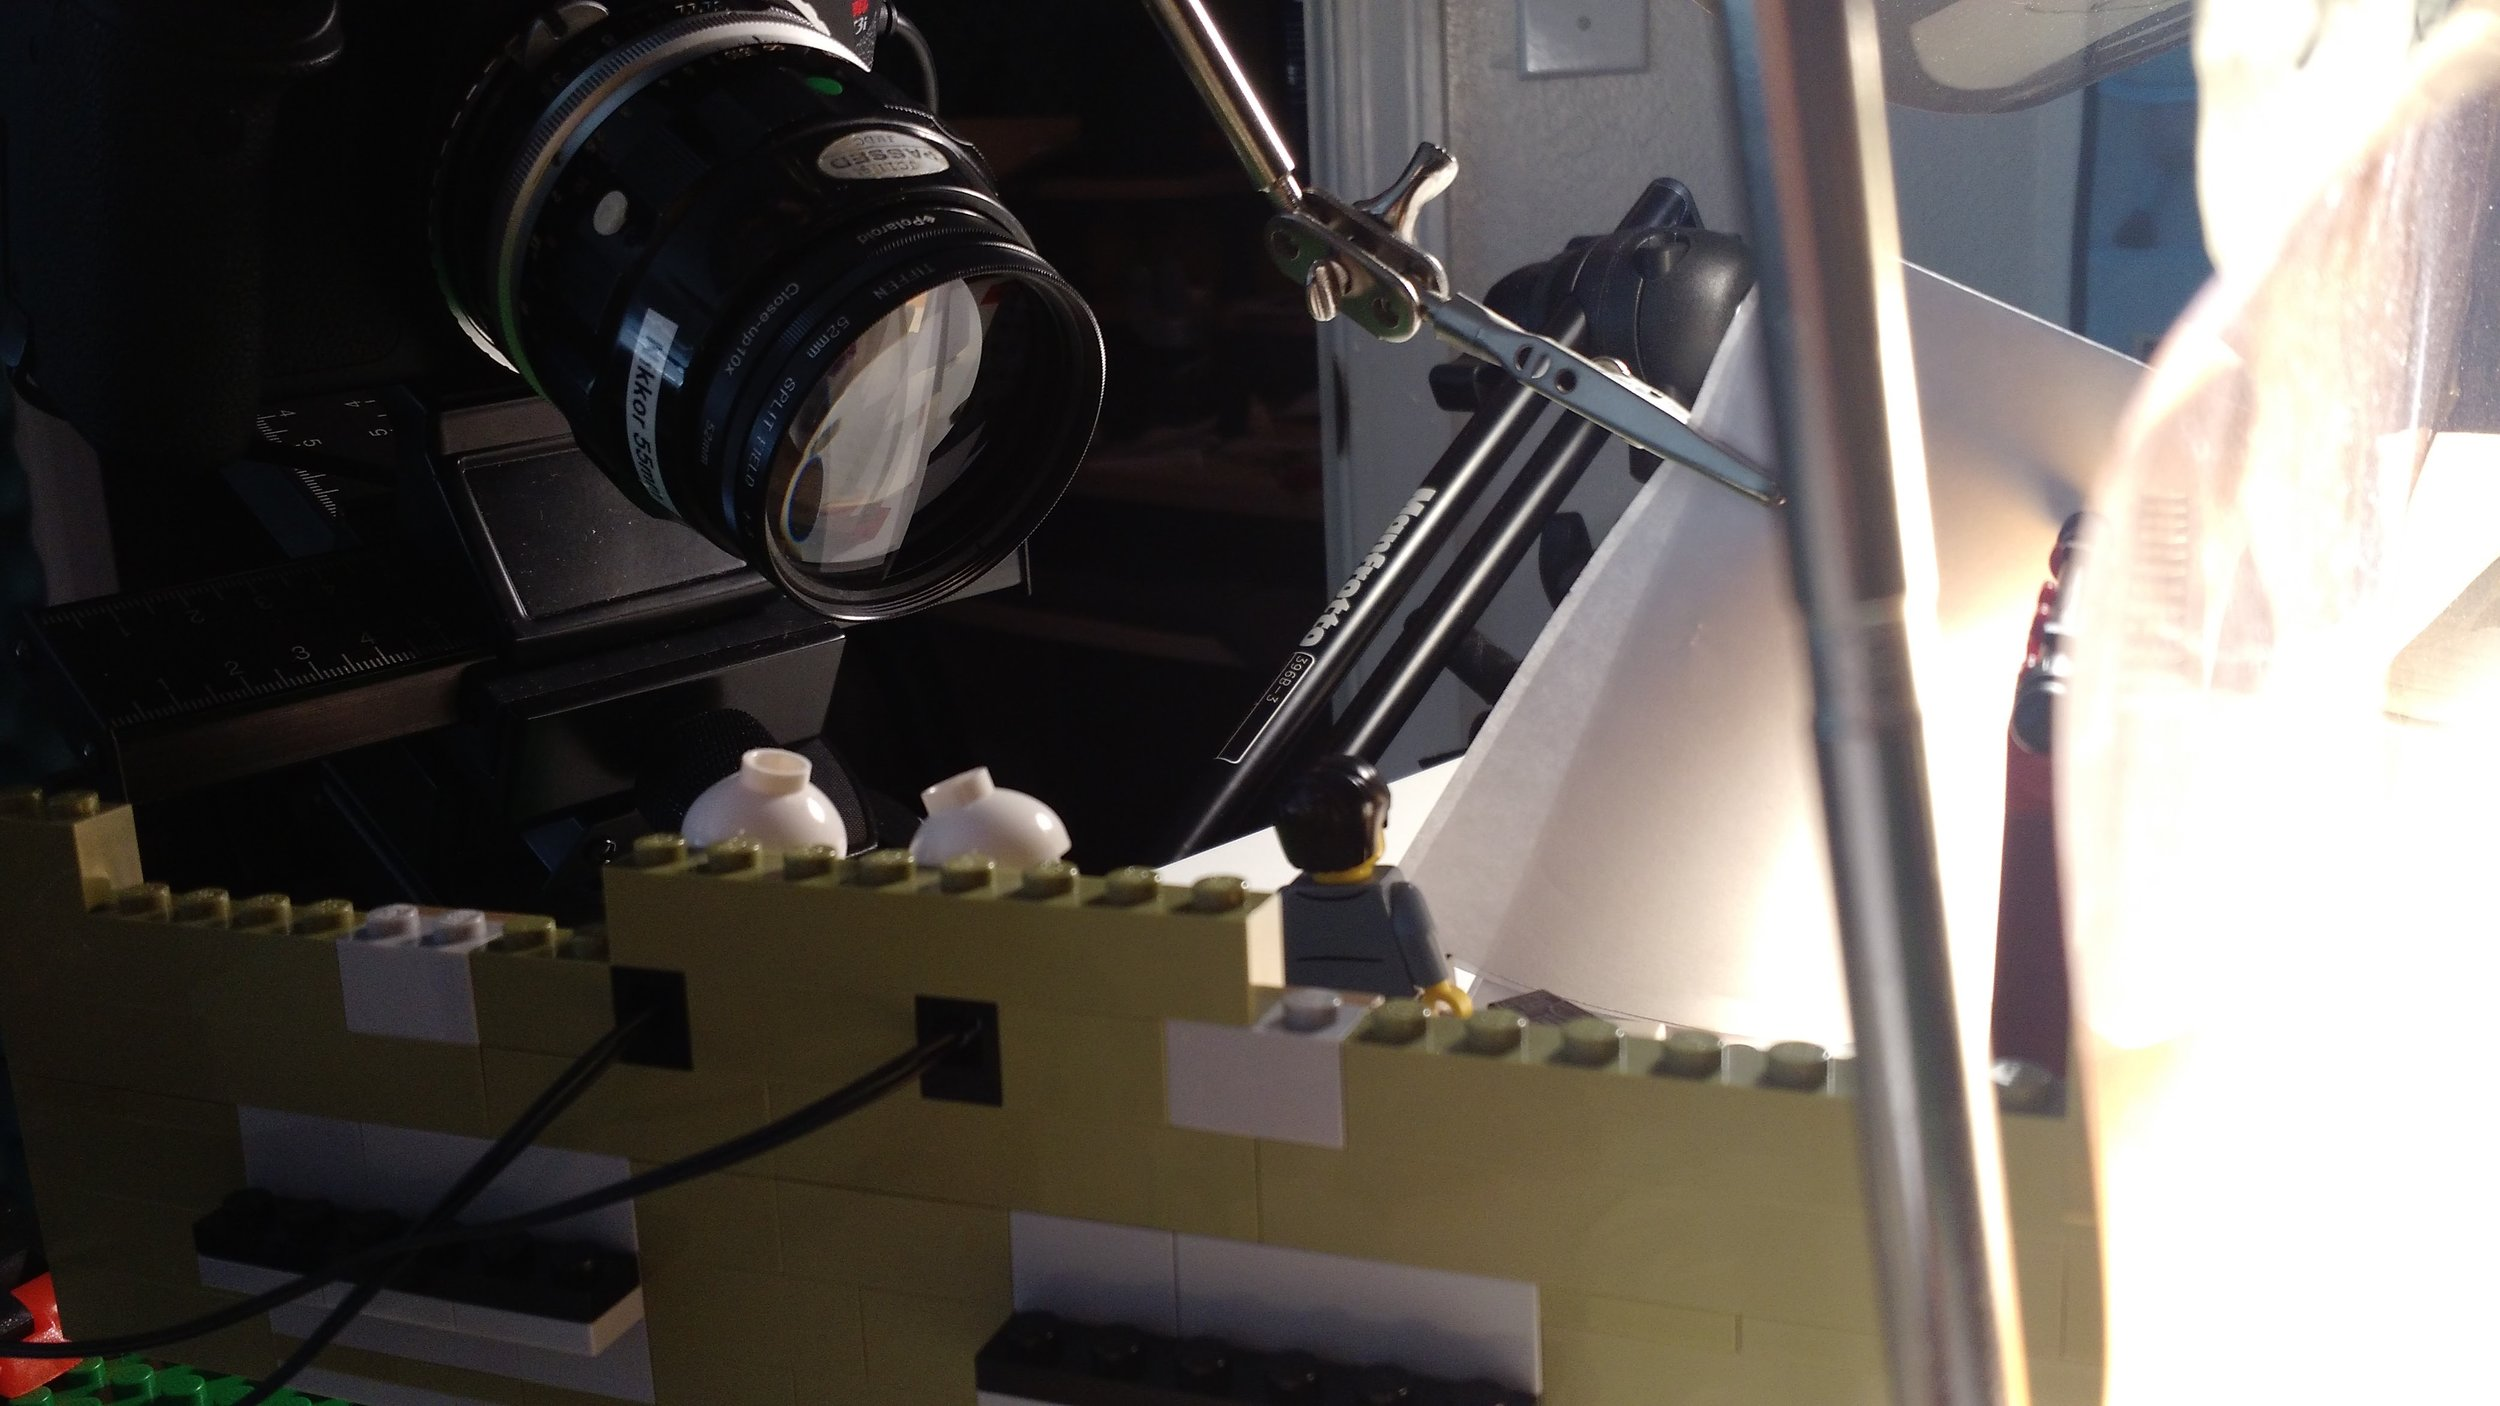 The split-field diopter, where only one half of the diopter has a lens